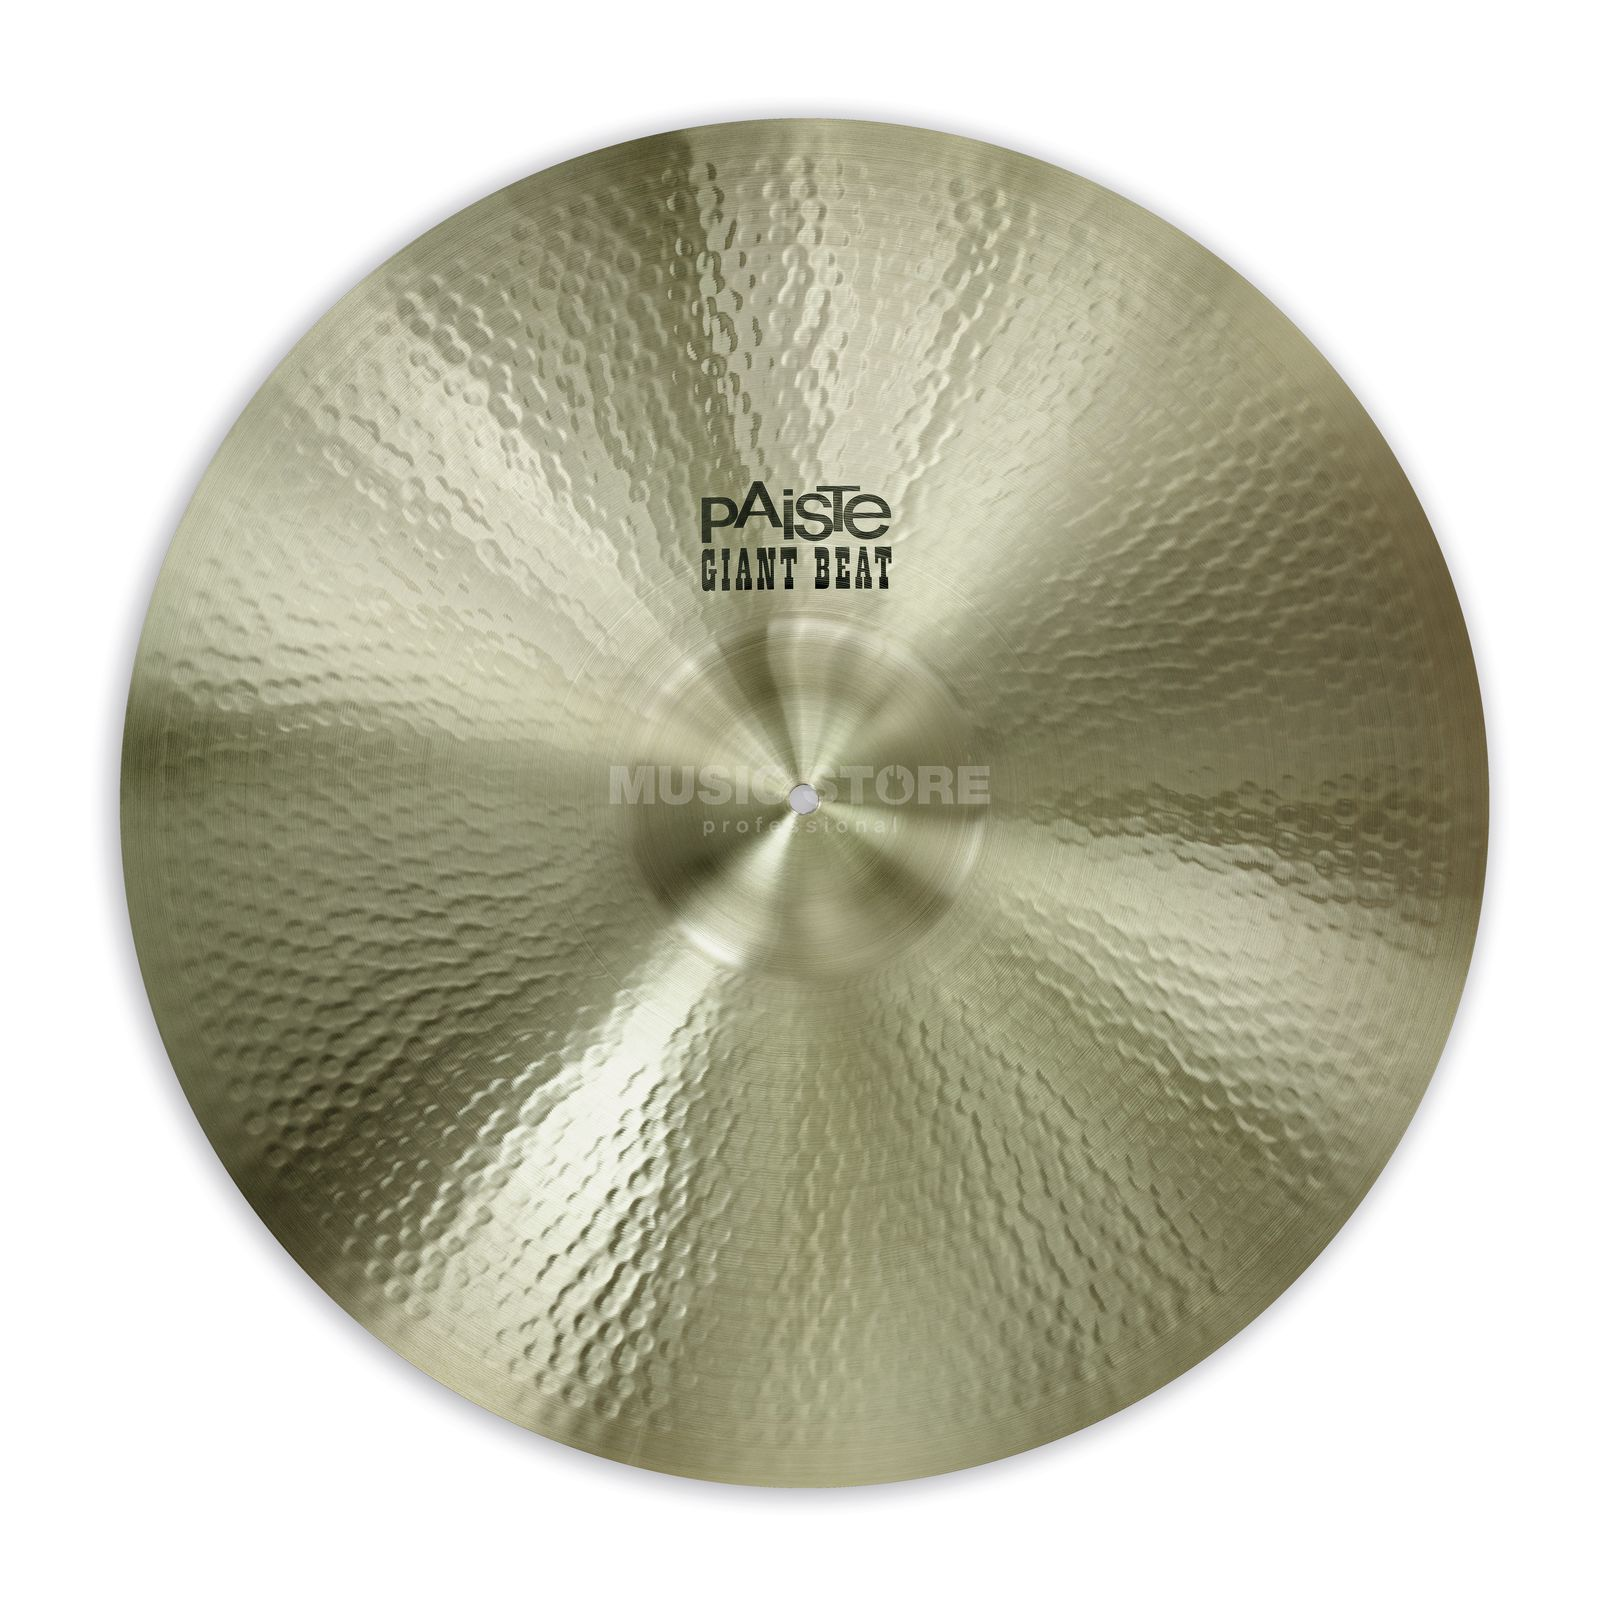 "Paiste Giant Beat Single, 26"" Image du produit"